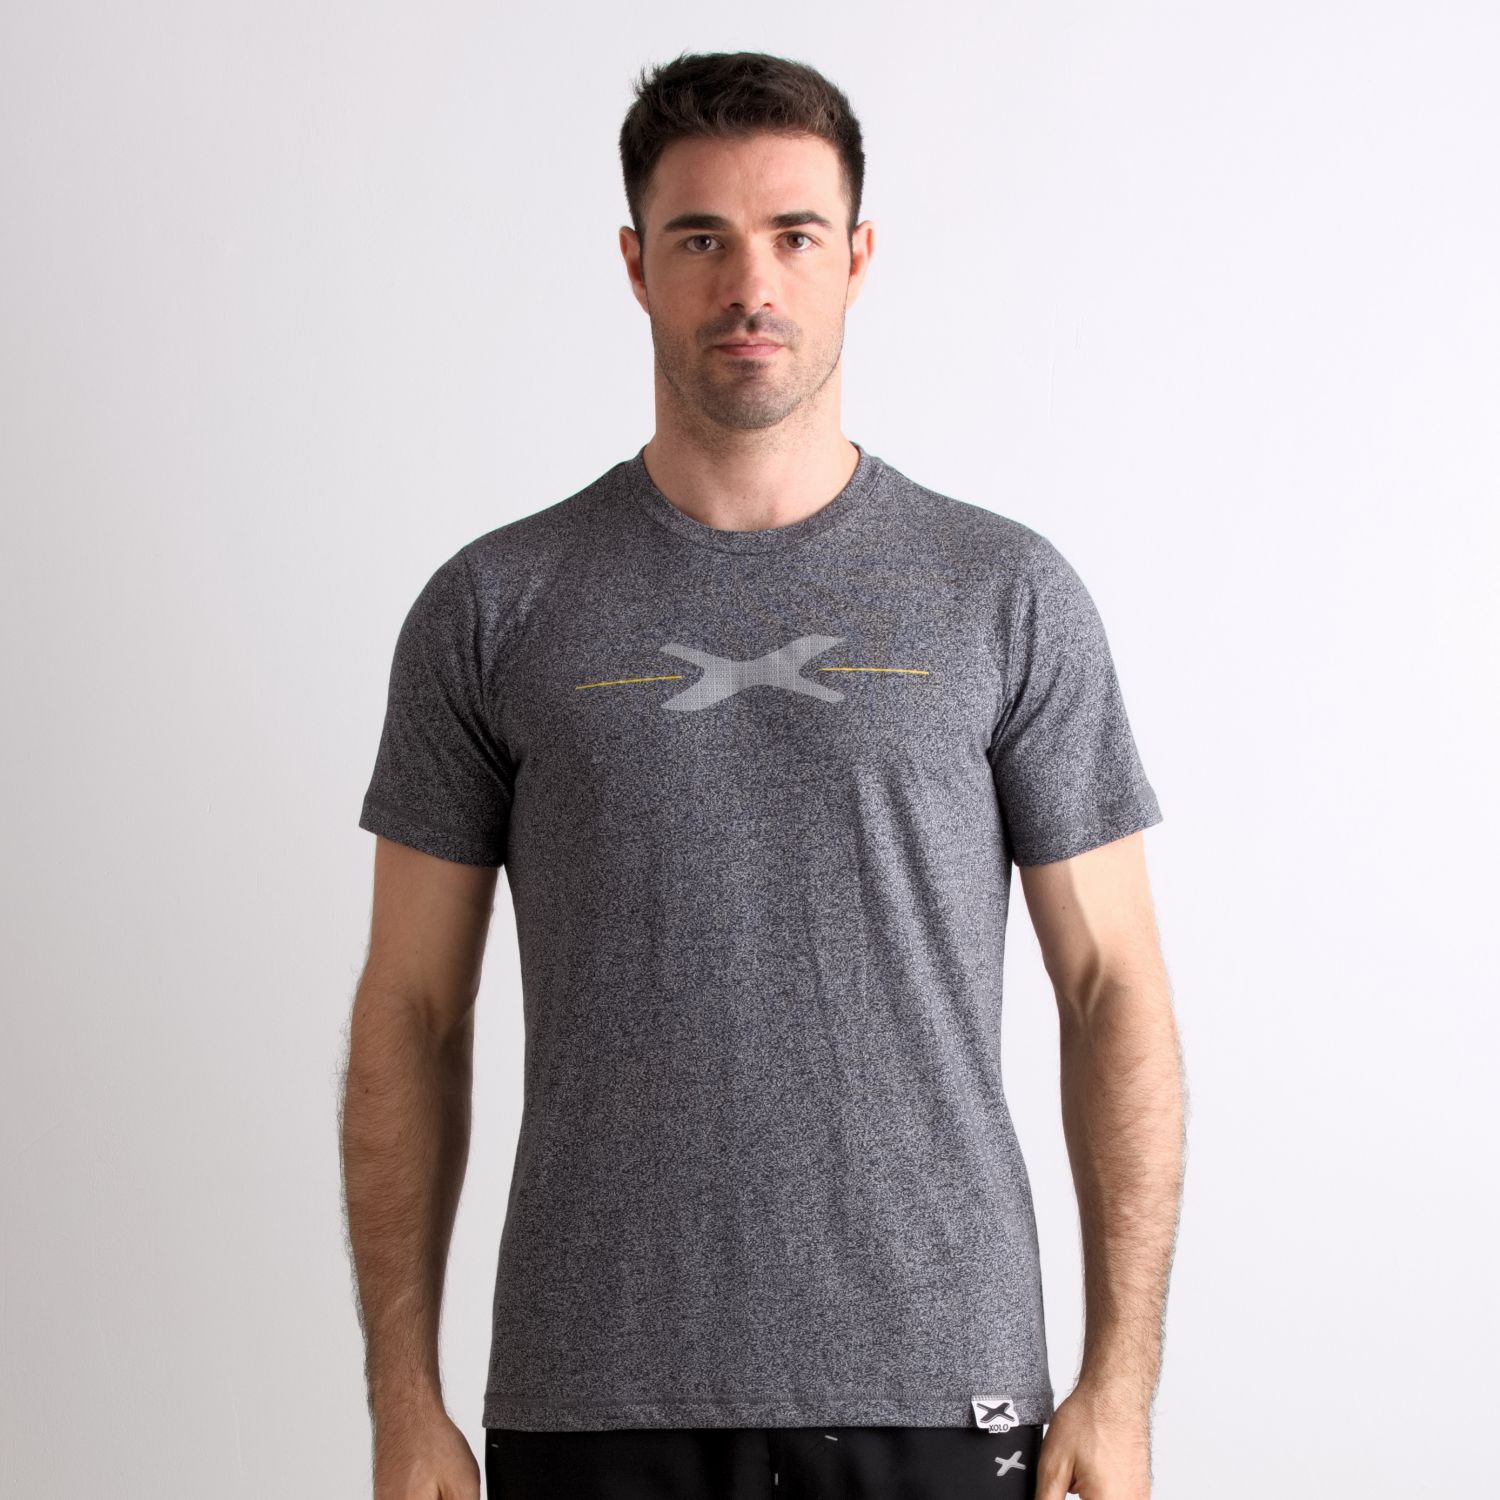 XOLO X CASUAL T-SHIRT  /   Code:040005  (Grey)